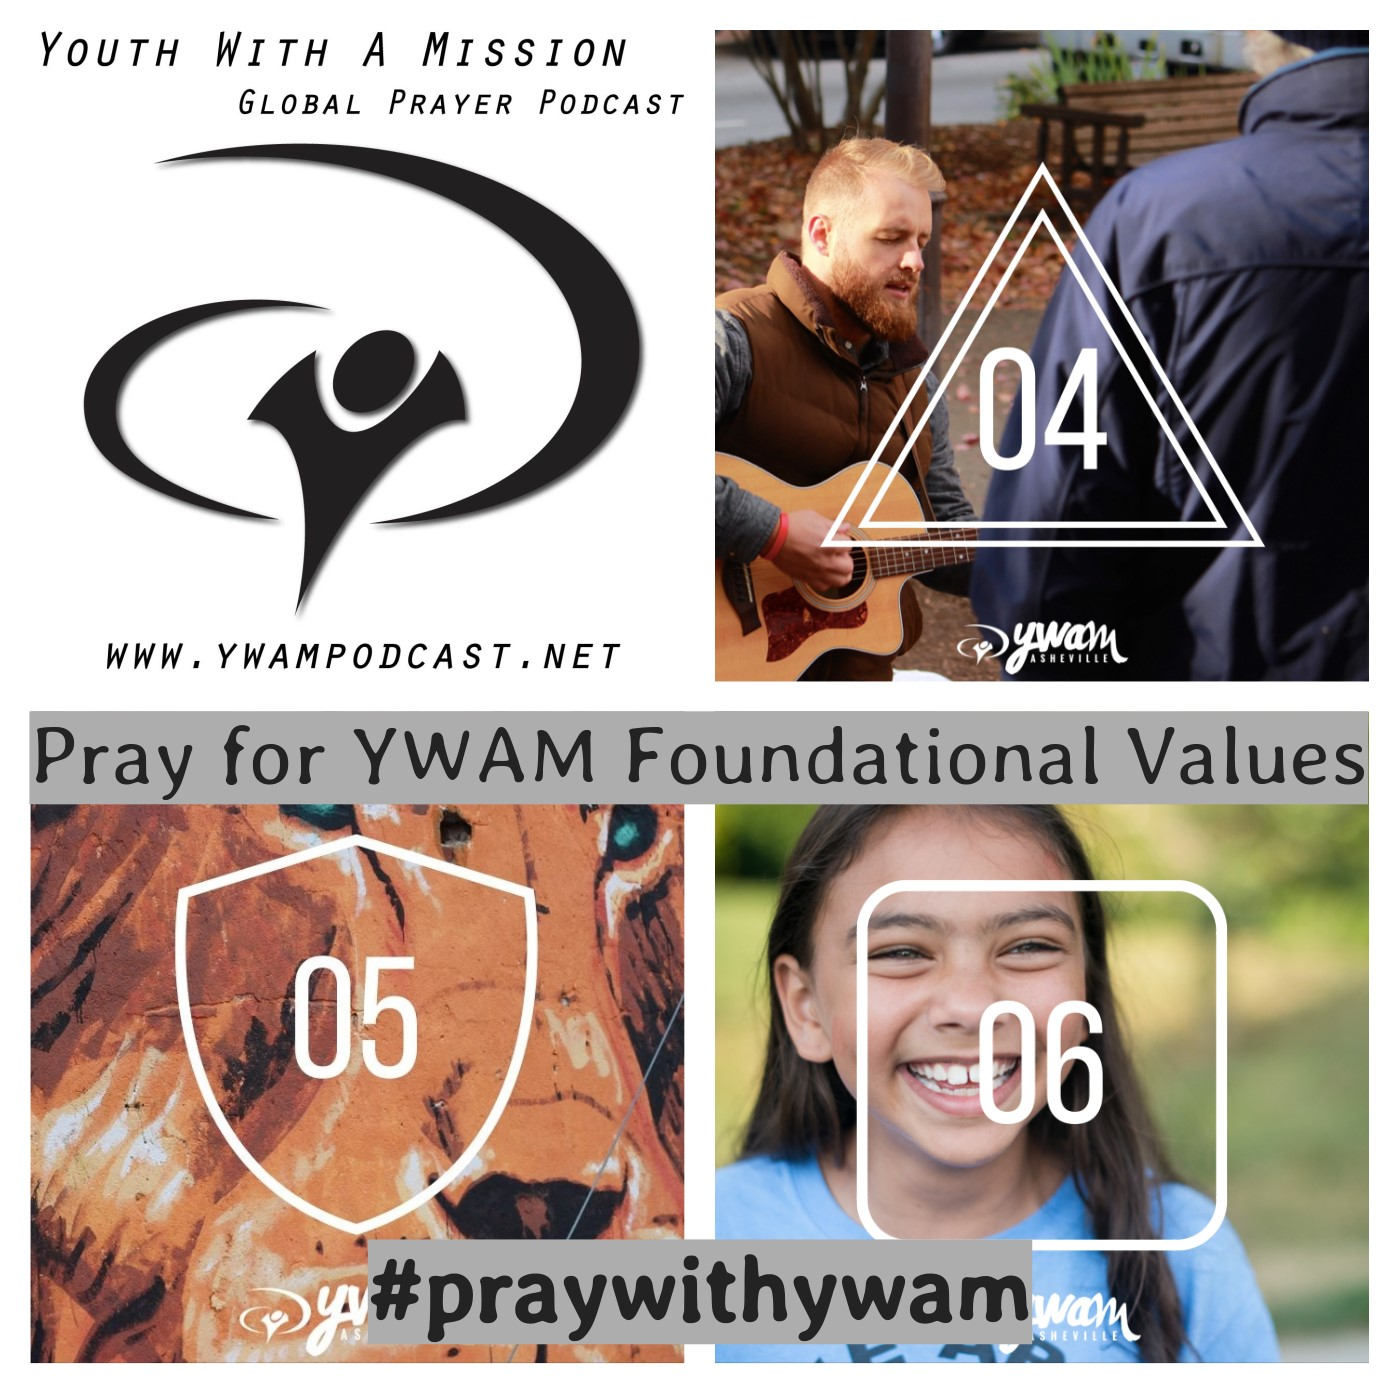 YWAM Foundational Values (4 - 6) - YWAM News that Bill finds Interesting